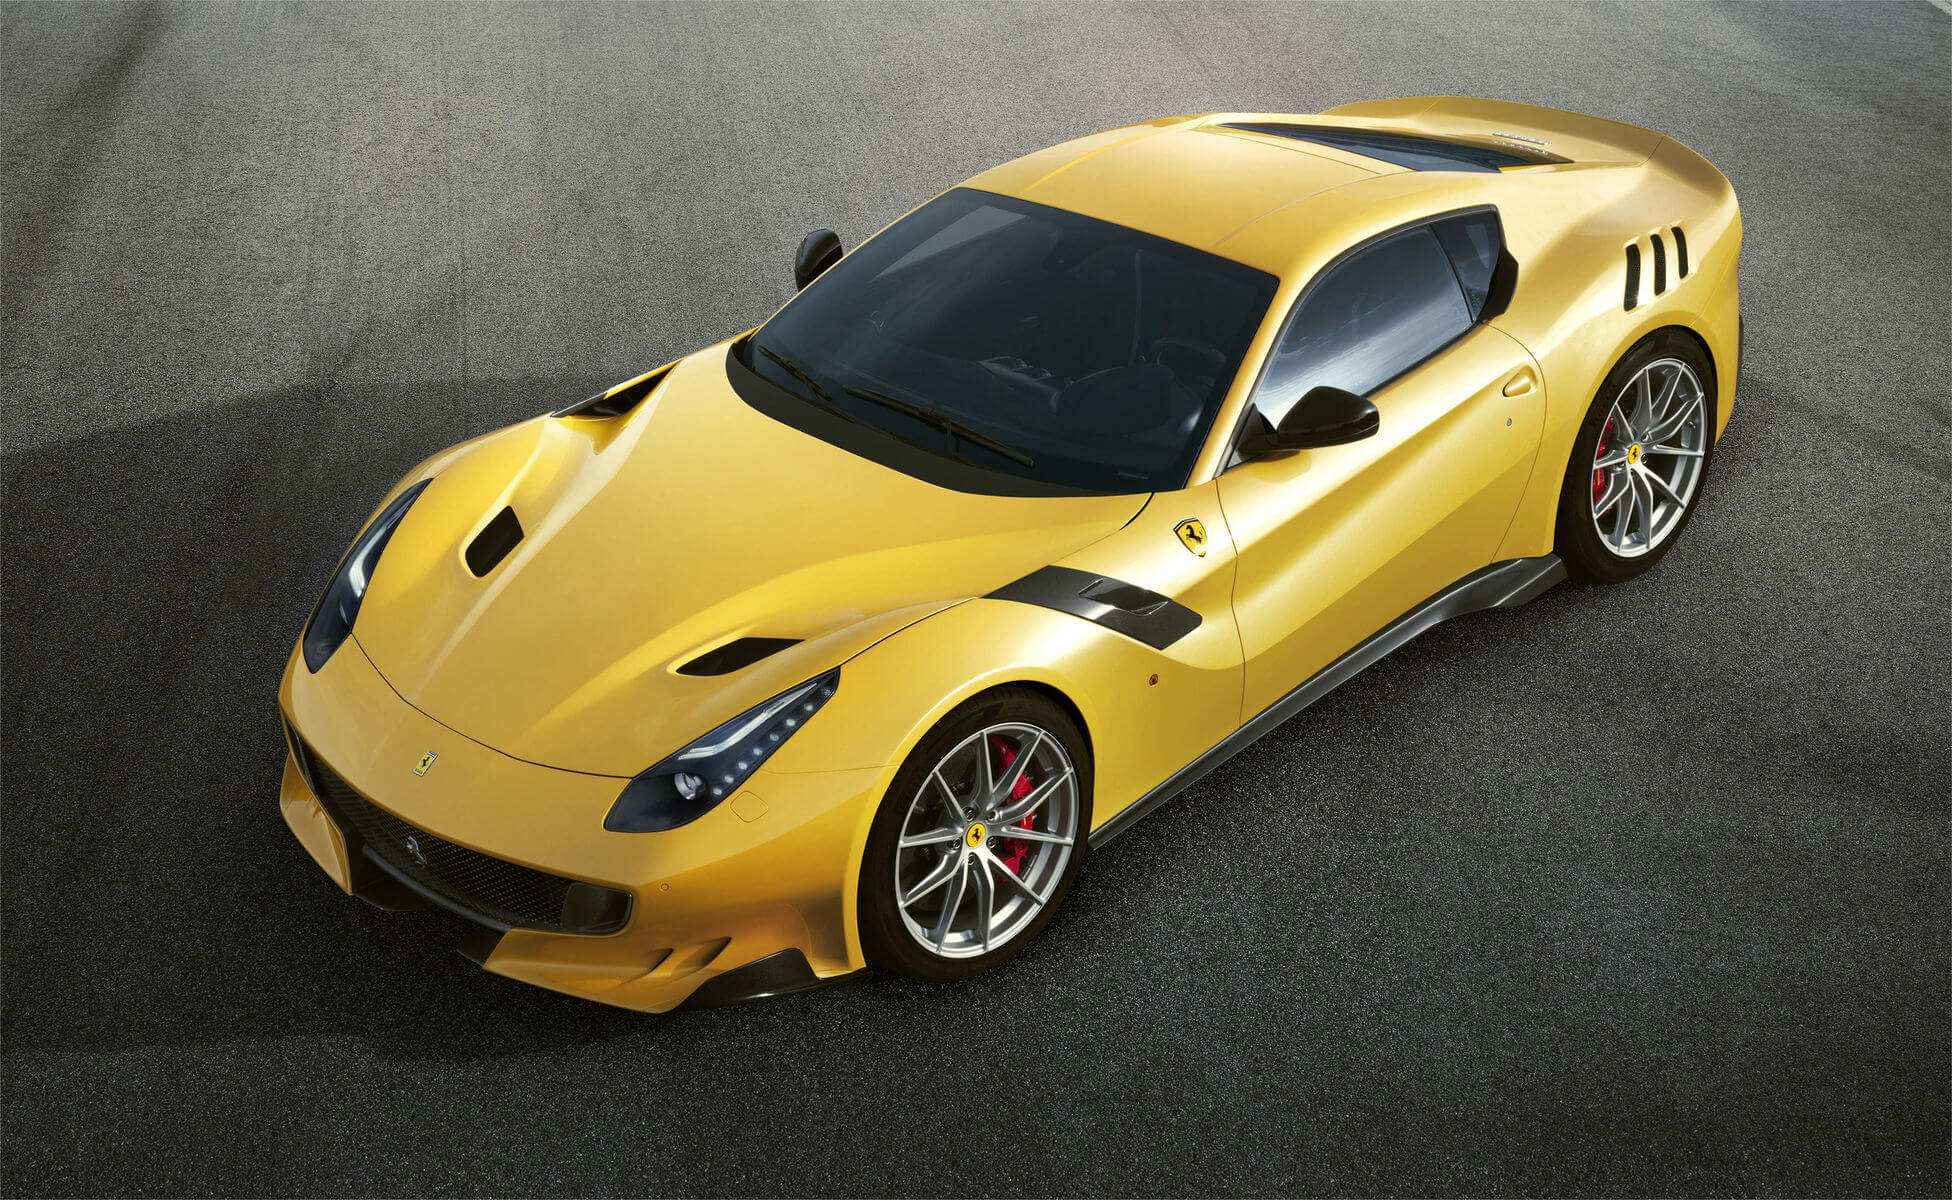 57 Best Review Ferrari F12 2020 History for Ferrari F12 2020